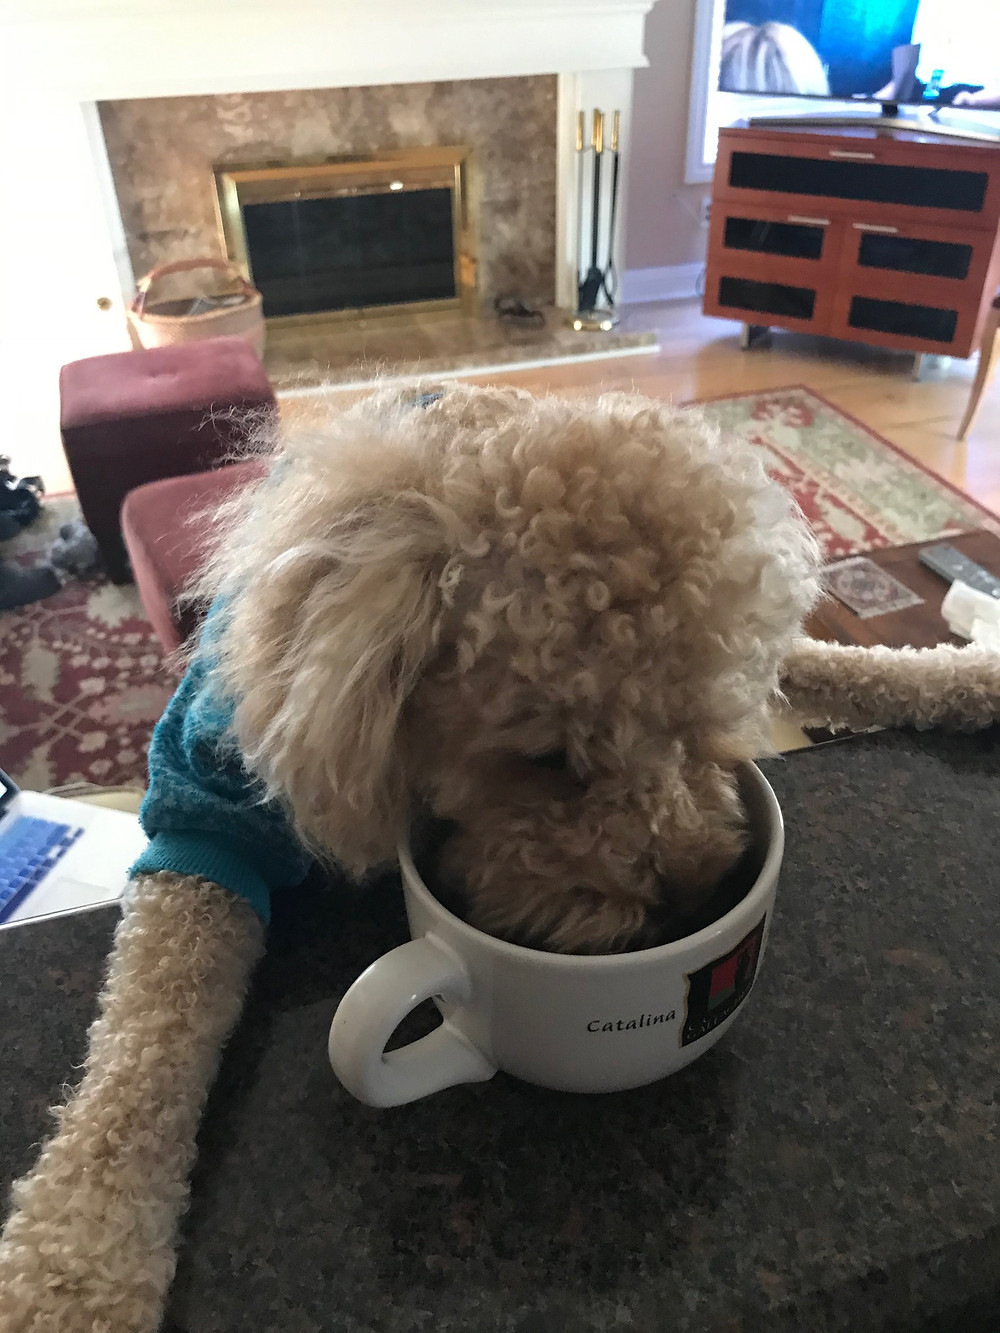 Here is the Company Mascot stealing some cold coffee while I write this post.